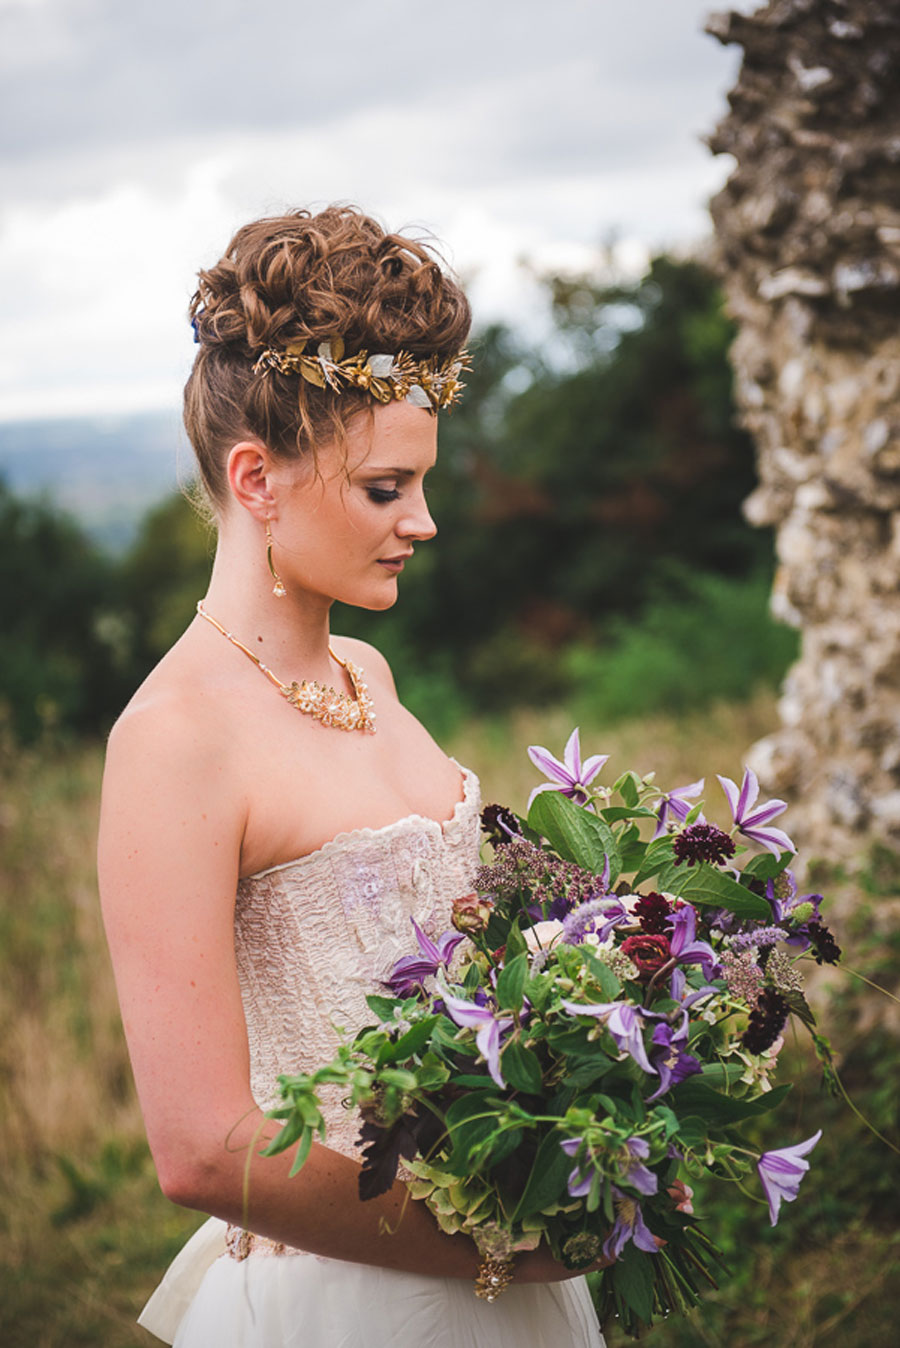 A Late Summer Renaissance-Meets-Fantasy Themed Bridal Shoot0032